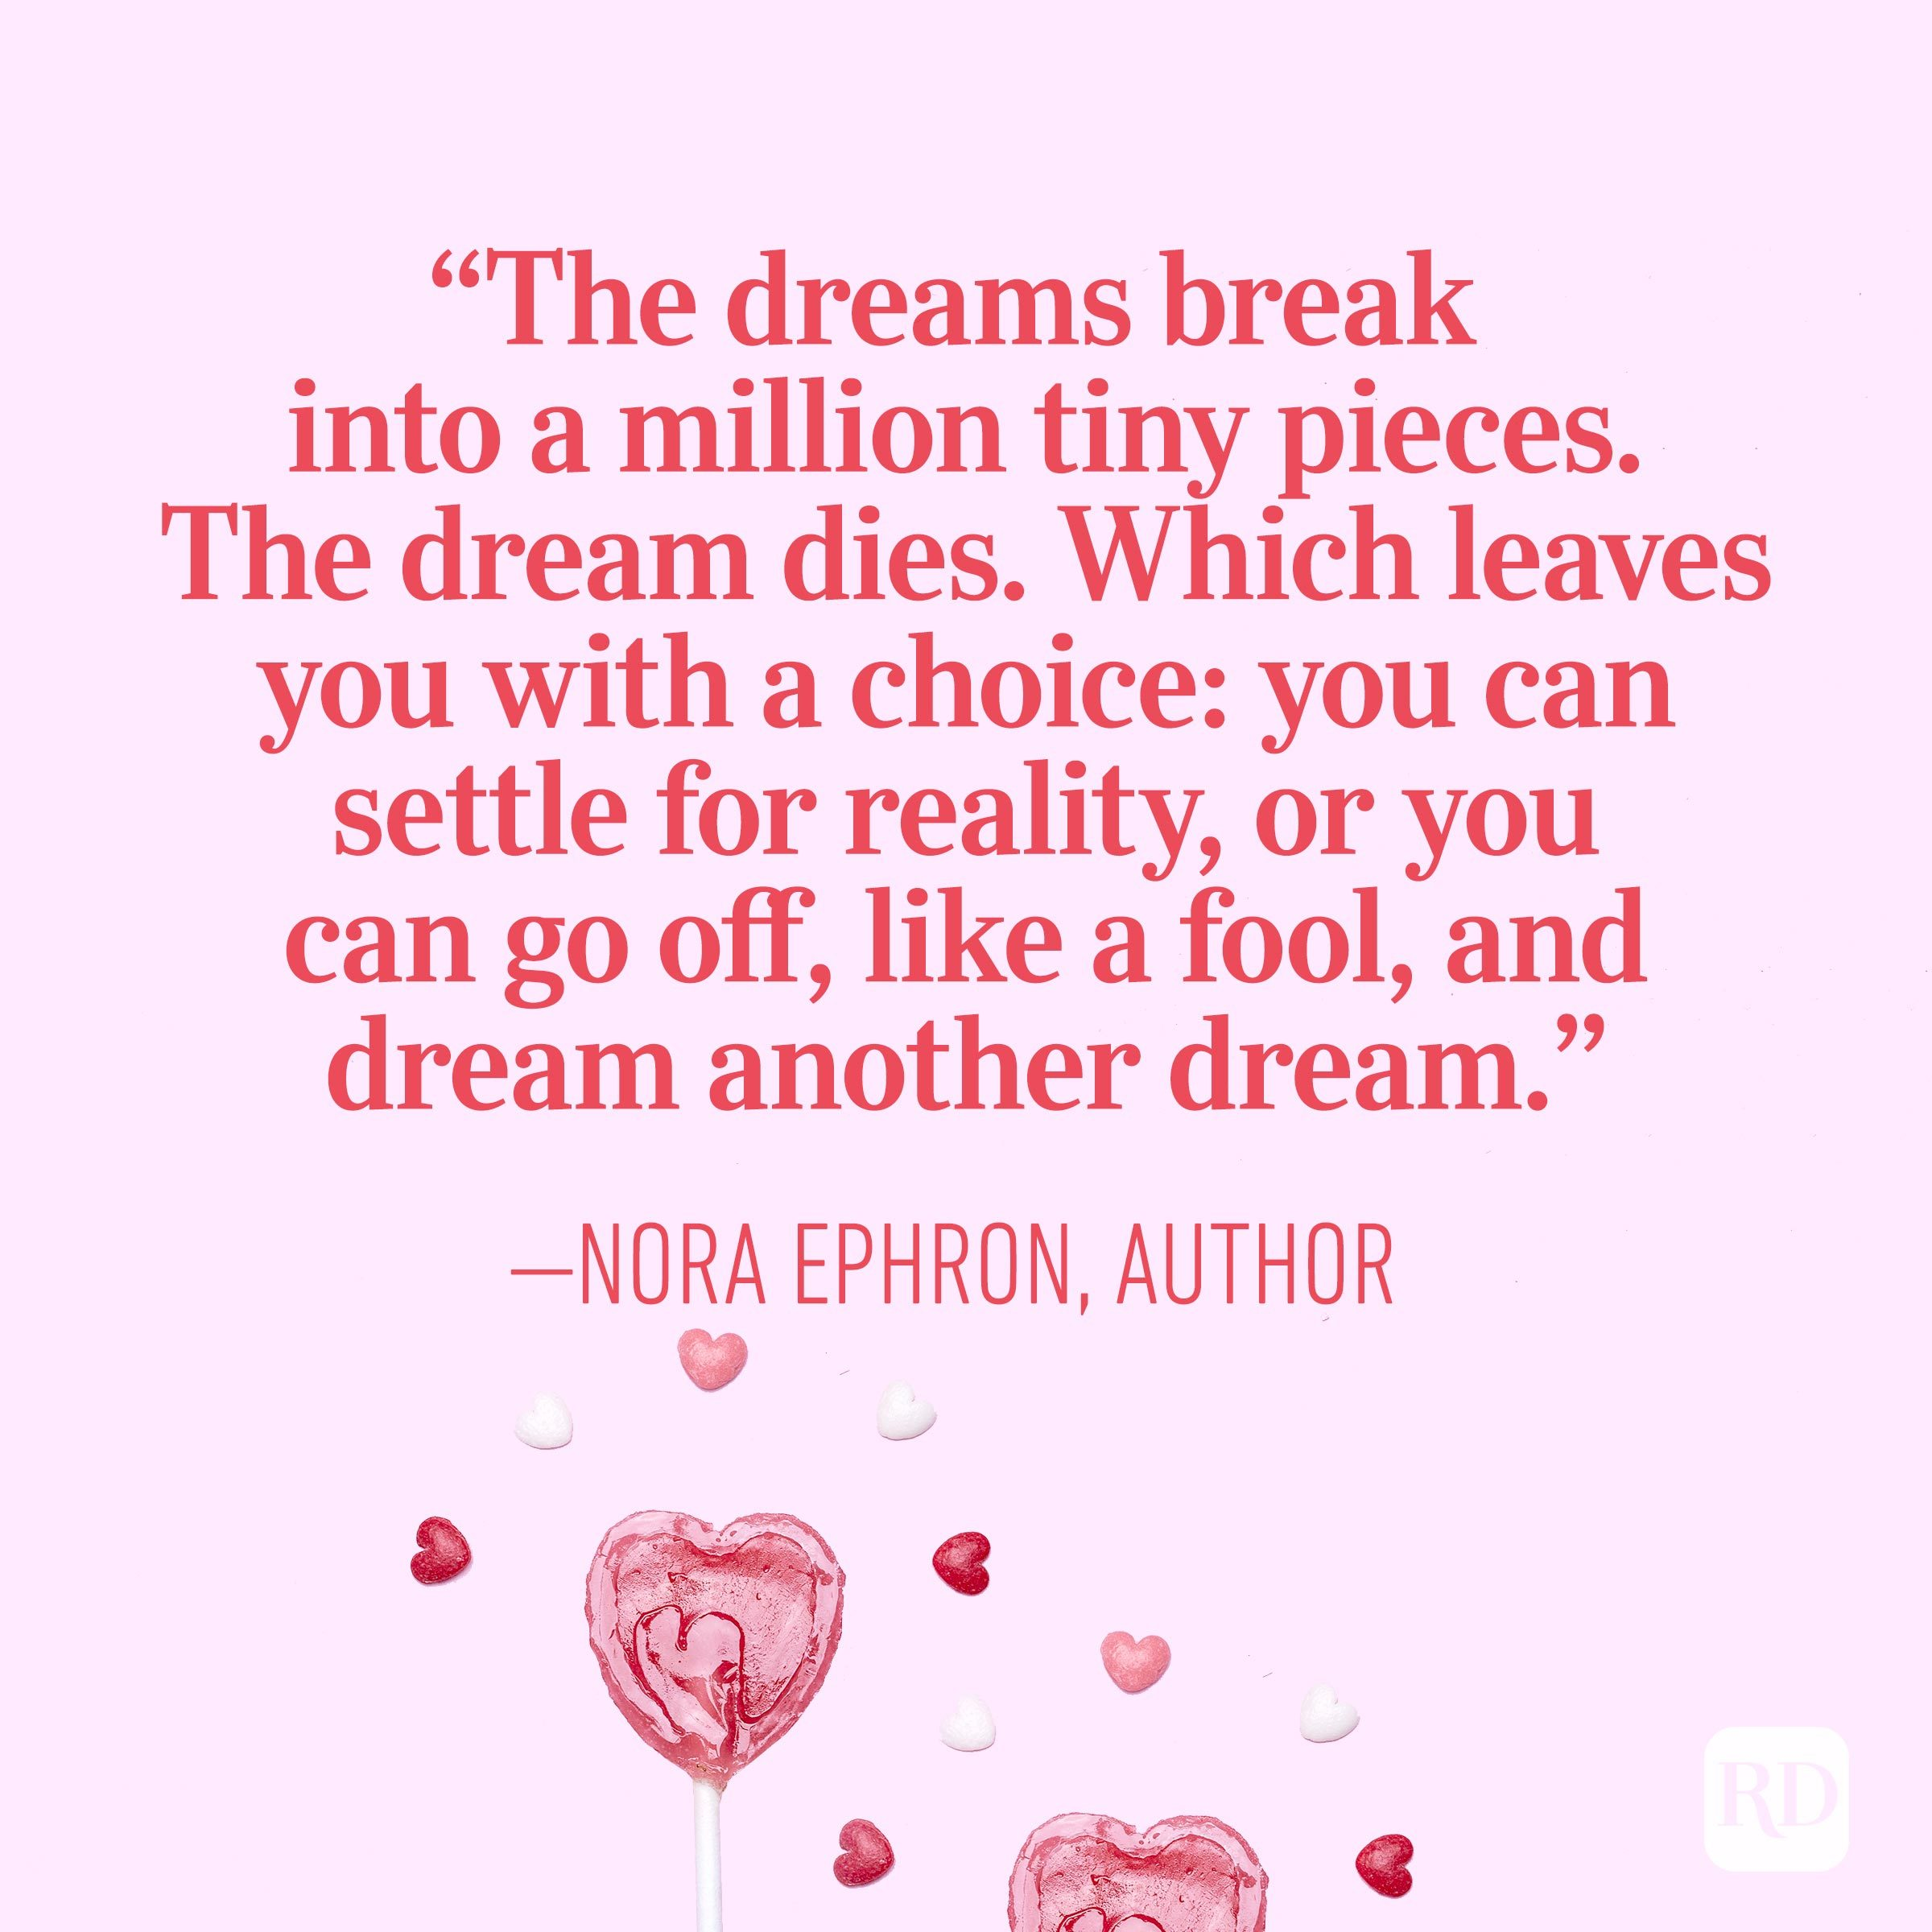 """The dreams break into a million tiny pieces. The dream dies. Which leaves you with a choice: you can settle for reality, or you can go off, like a fool, and dream another dream."" – Nora Ephron, author"